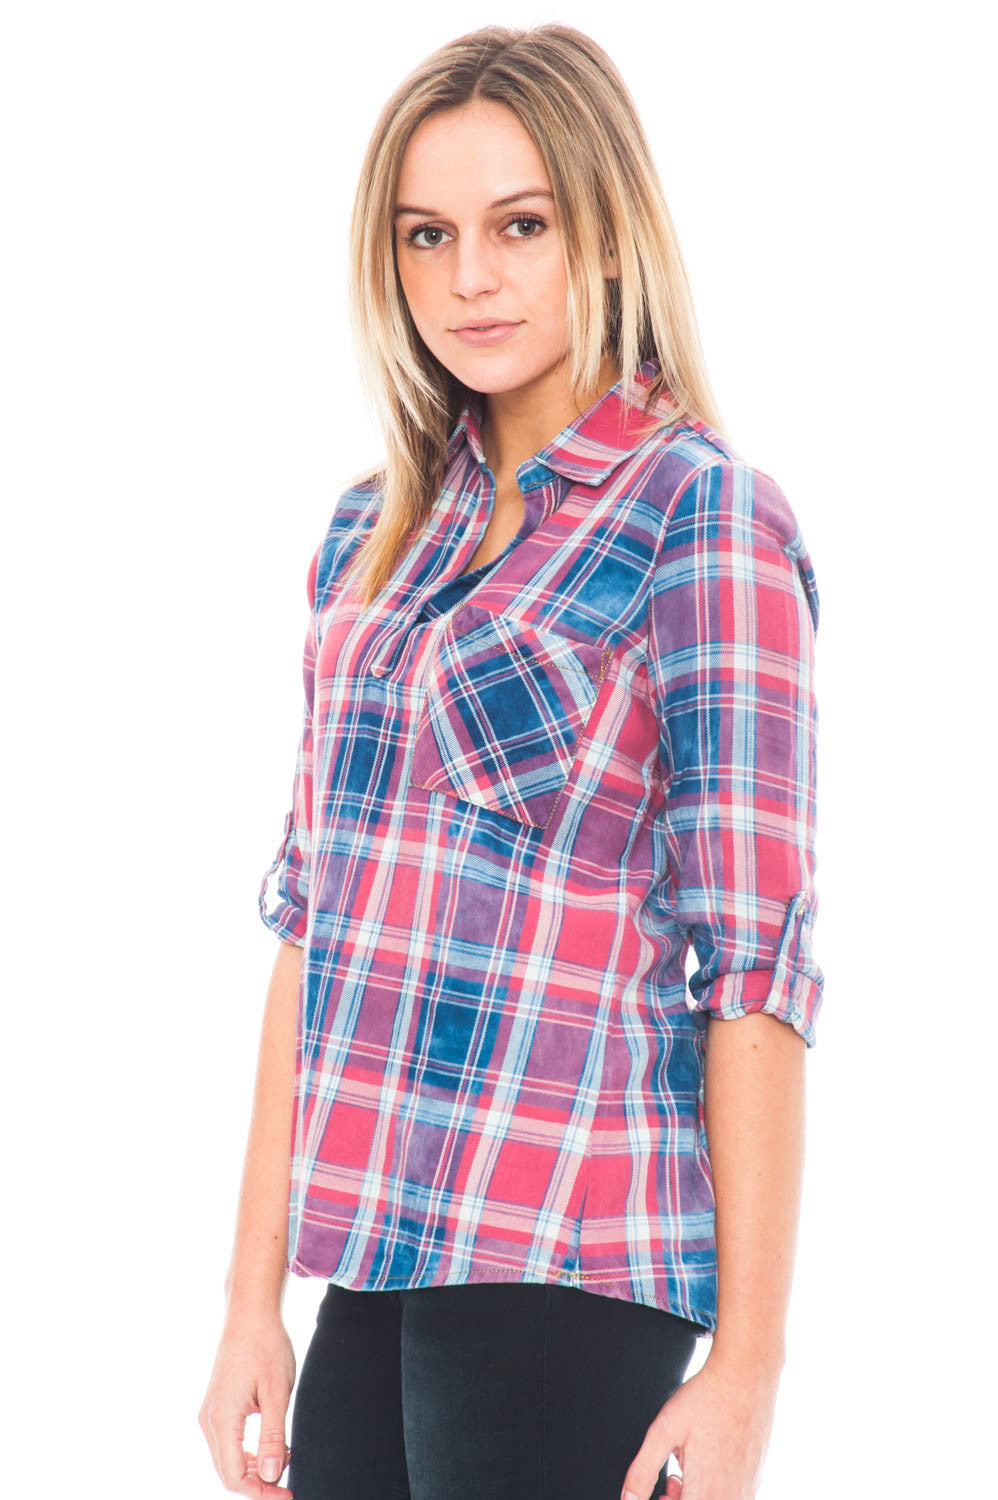 Shirt - 3/4 Sleeve Vintage Plaid Top with Relaxed Collar